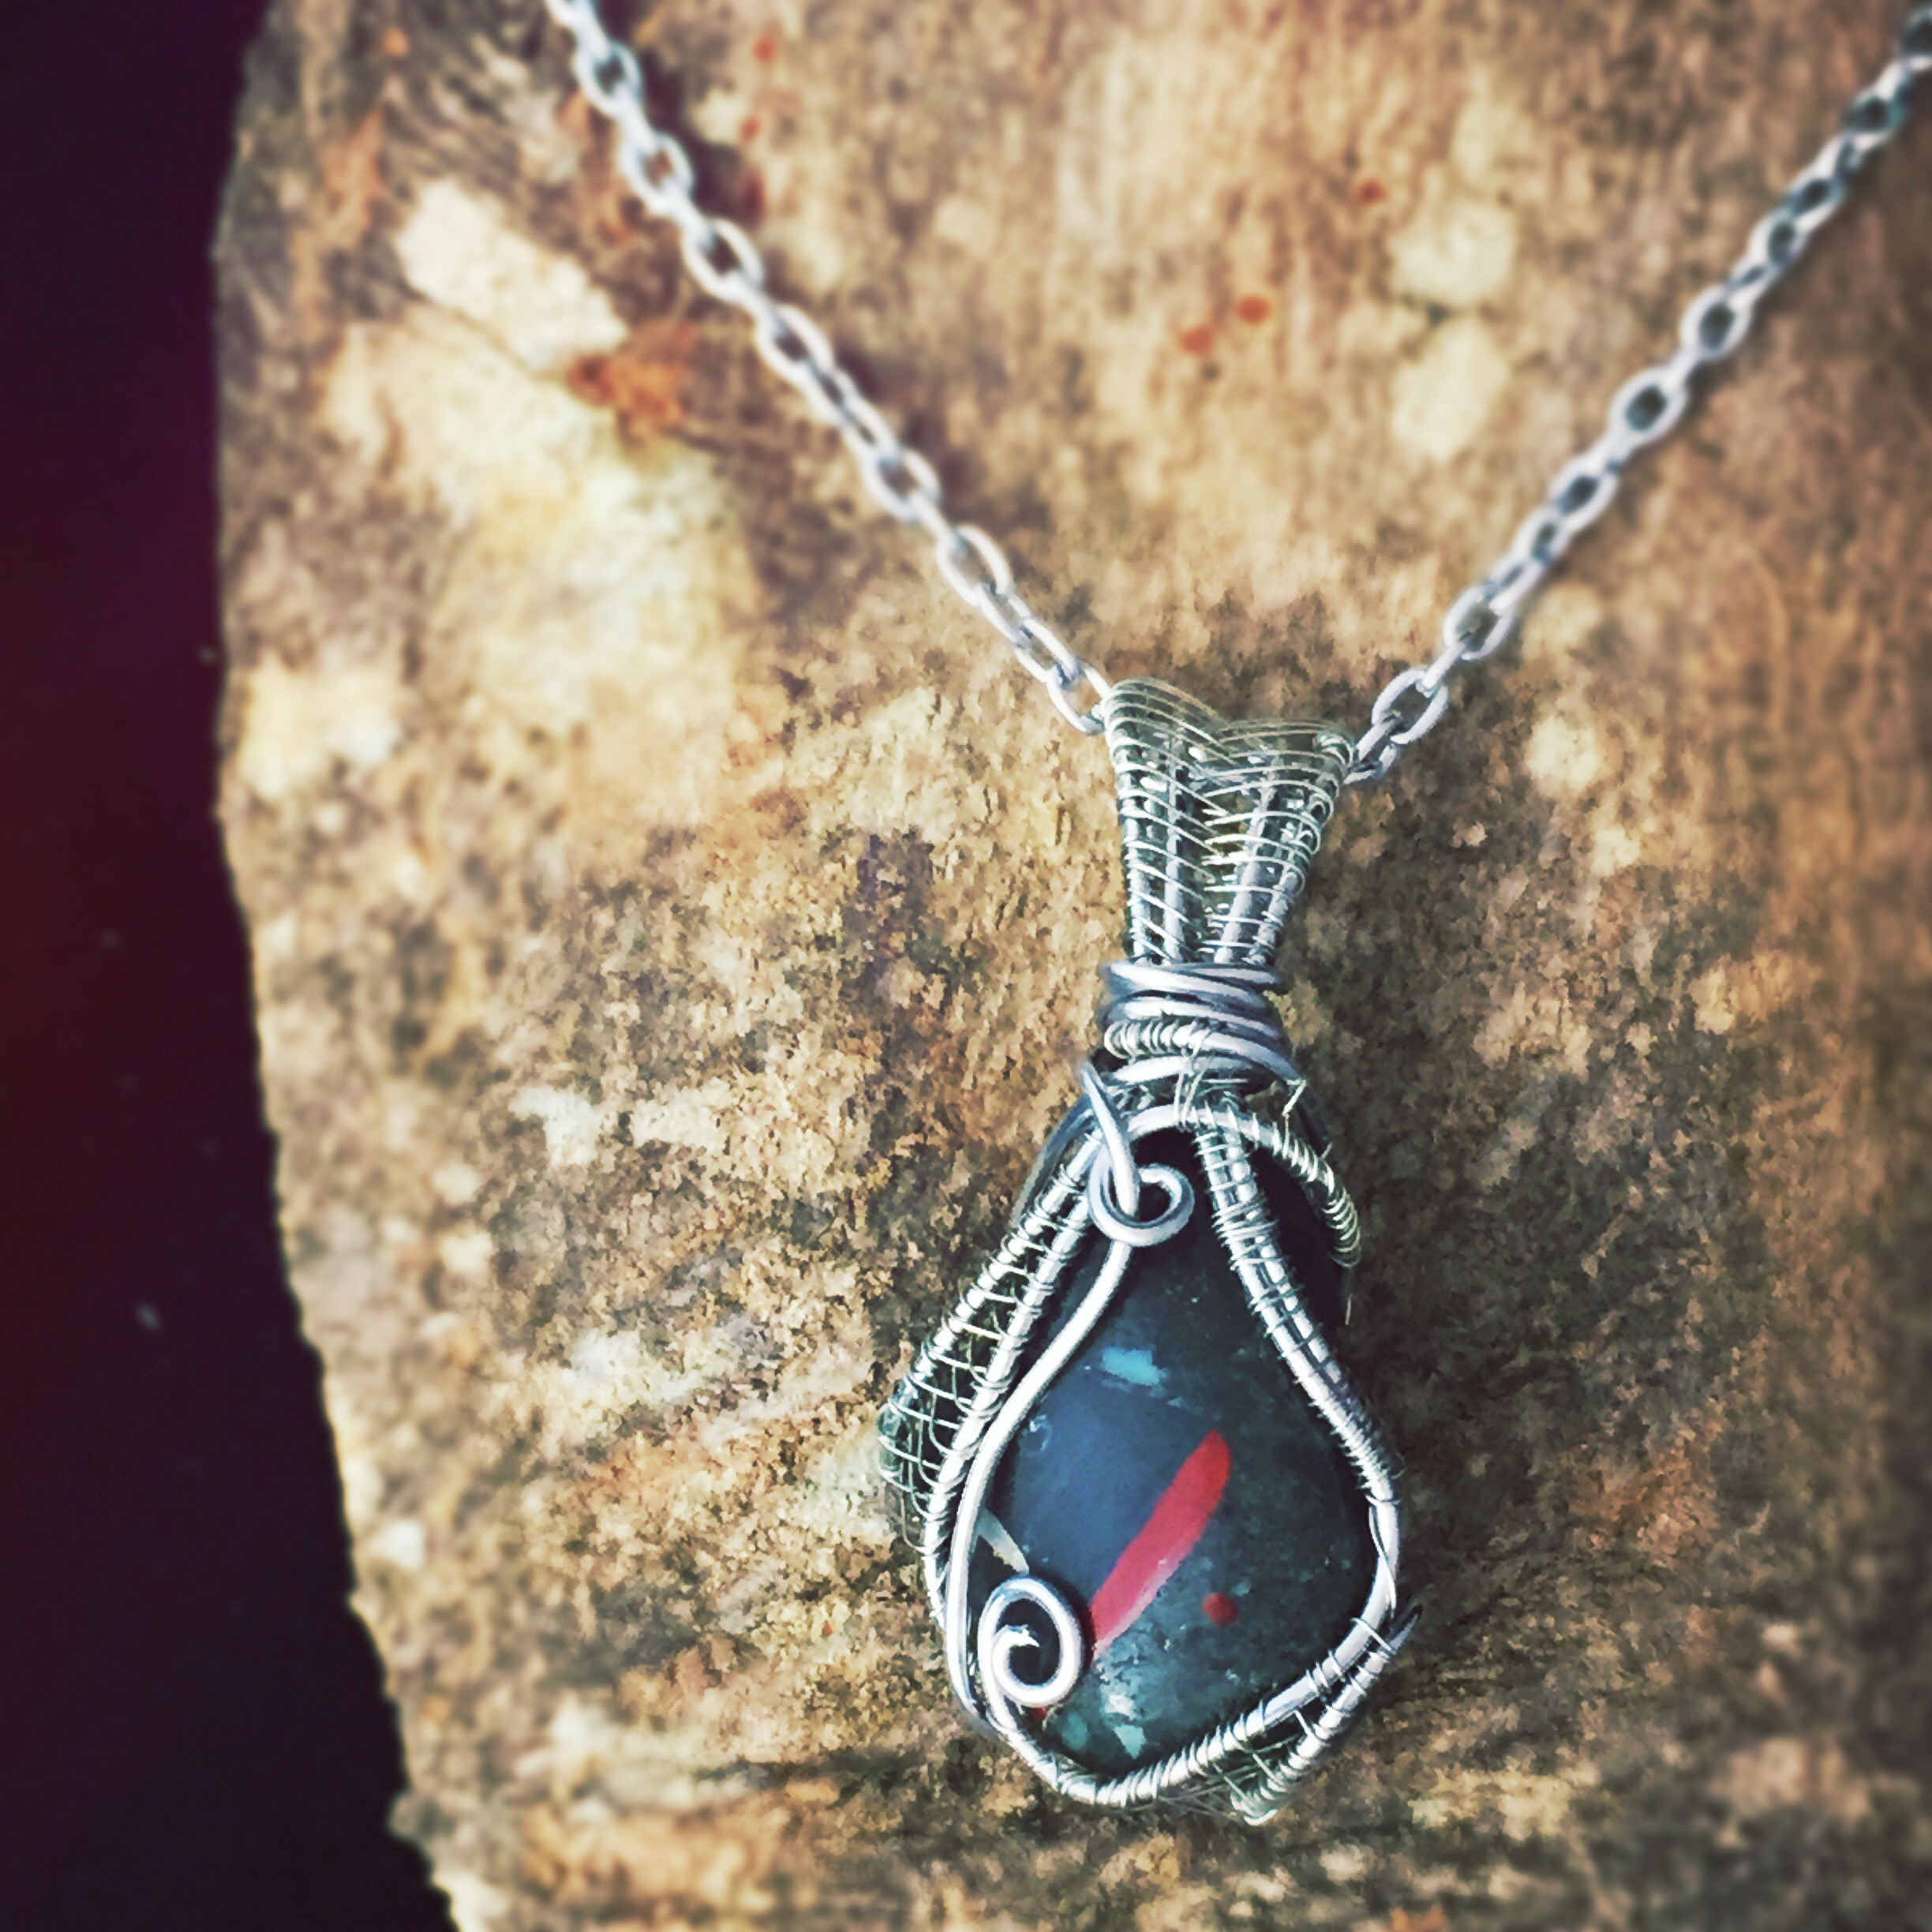 Snag this bloodstone for your libra energy here!